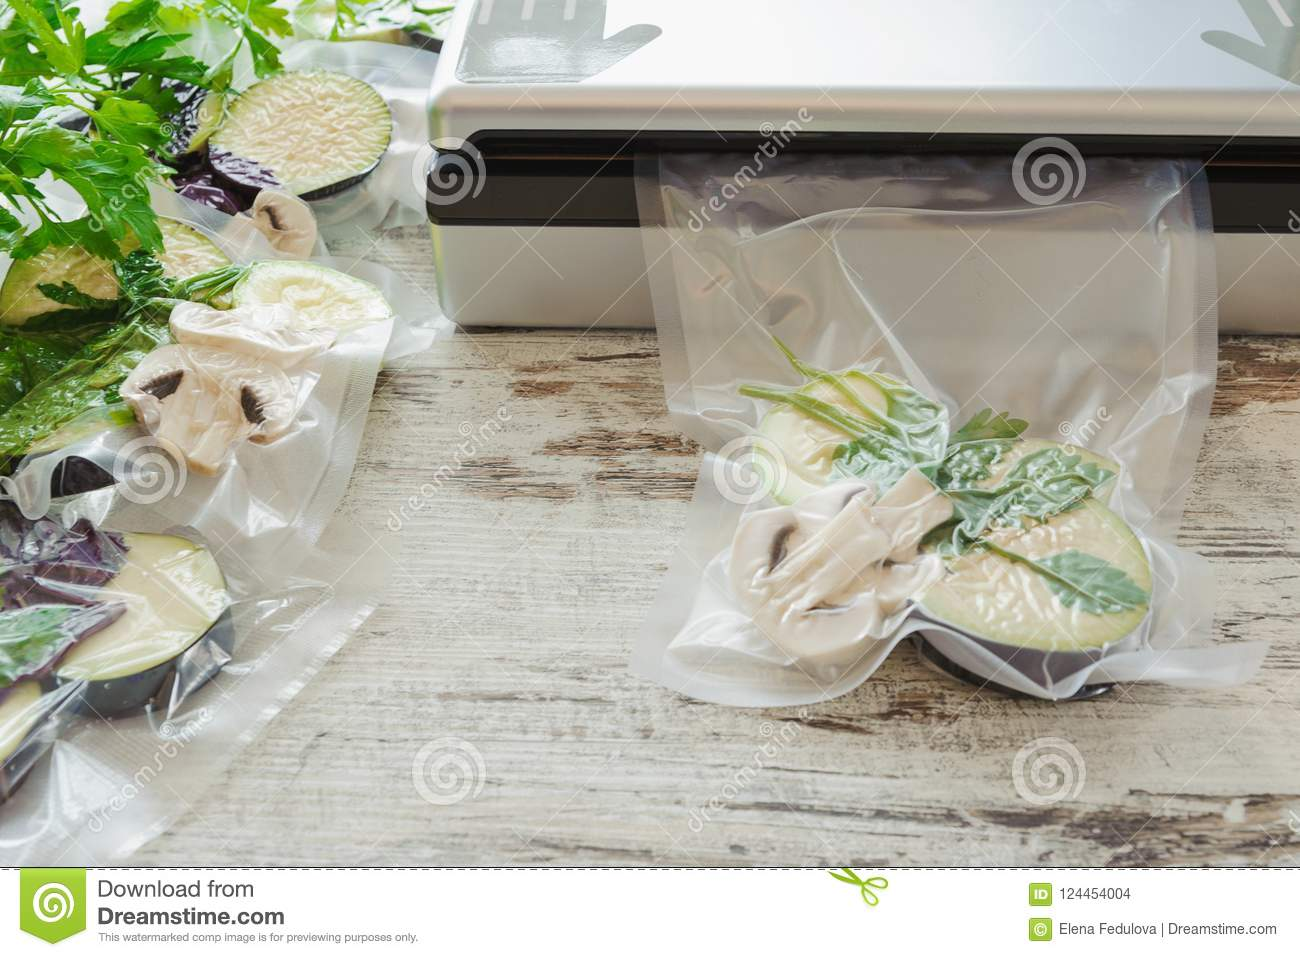 Raw vegetables and mushroom in vacuum package. Sous-vide, new technology cuisine.